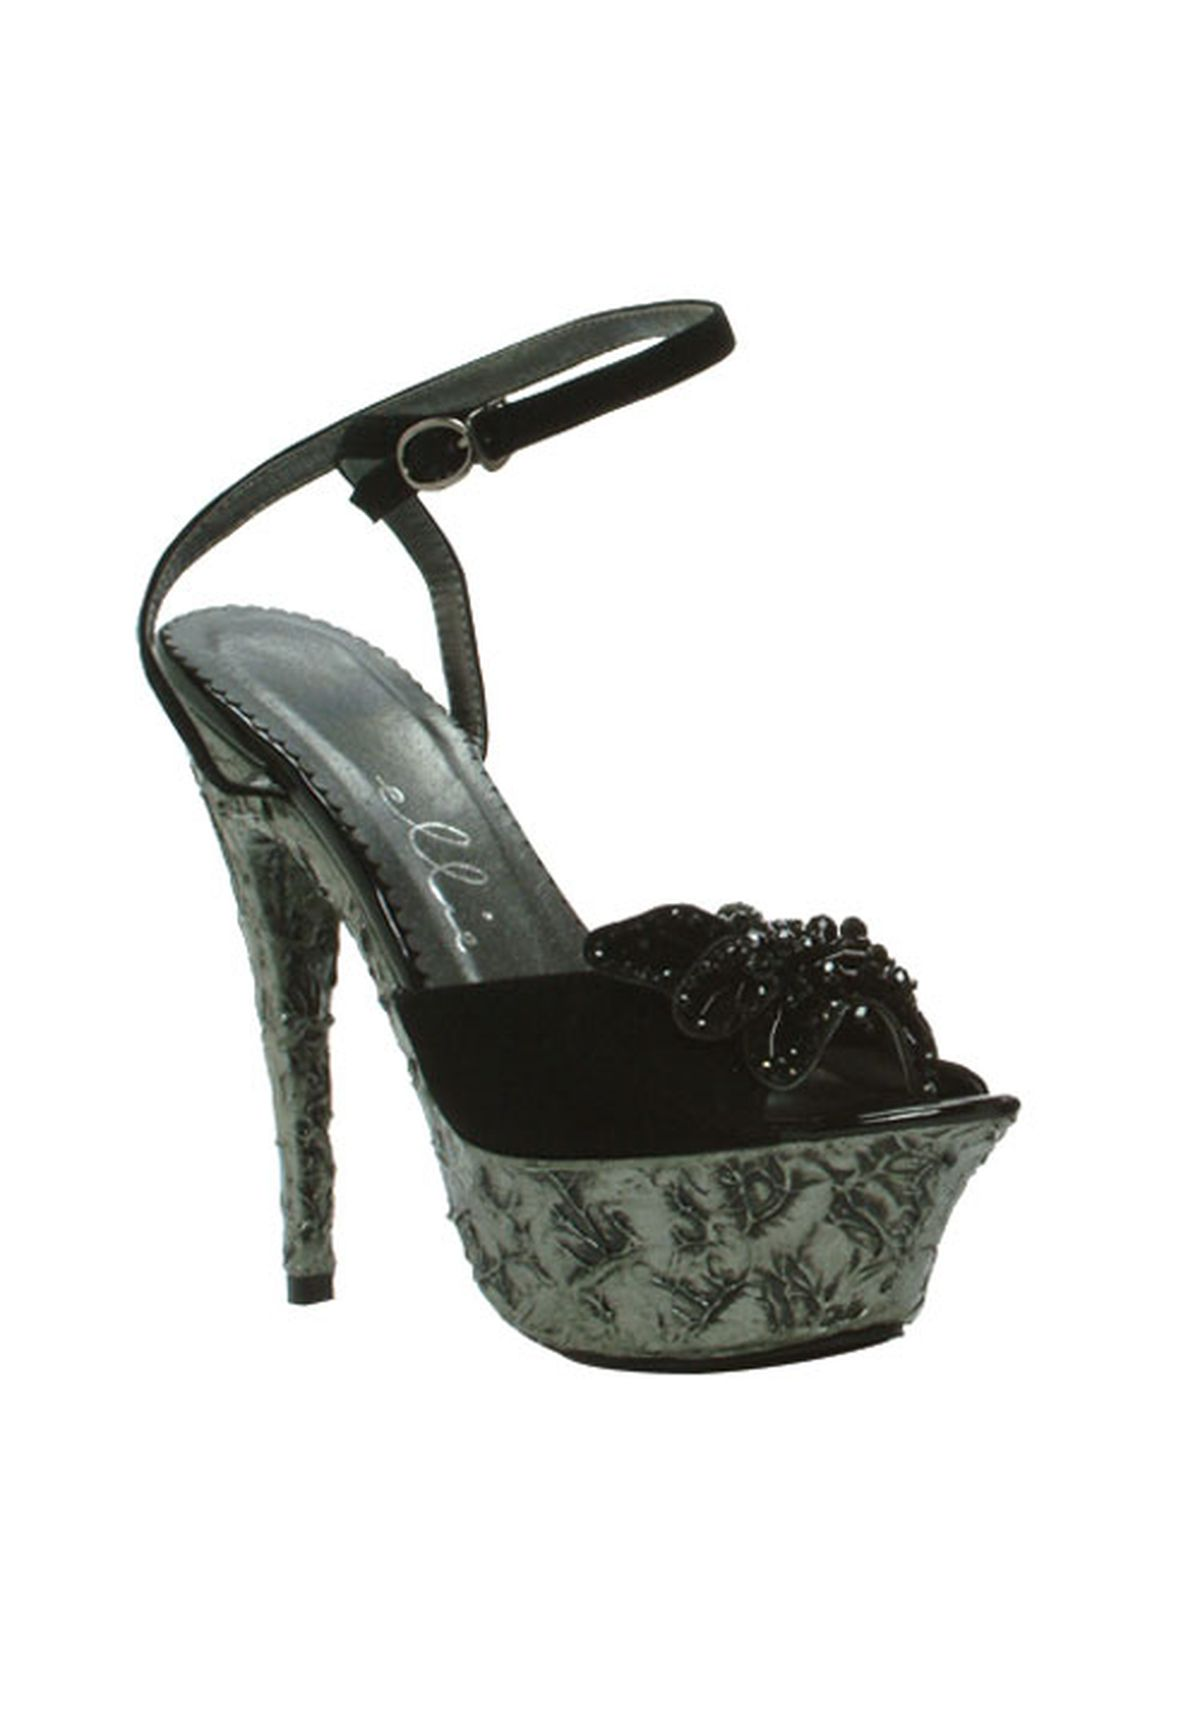 ellie shoes 688 s 6 inch heel lava platform